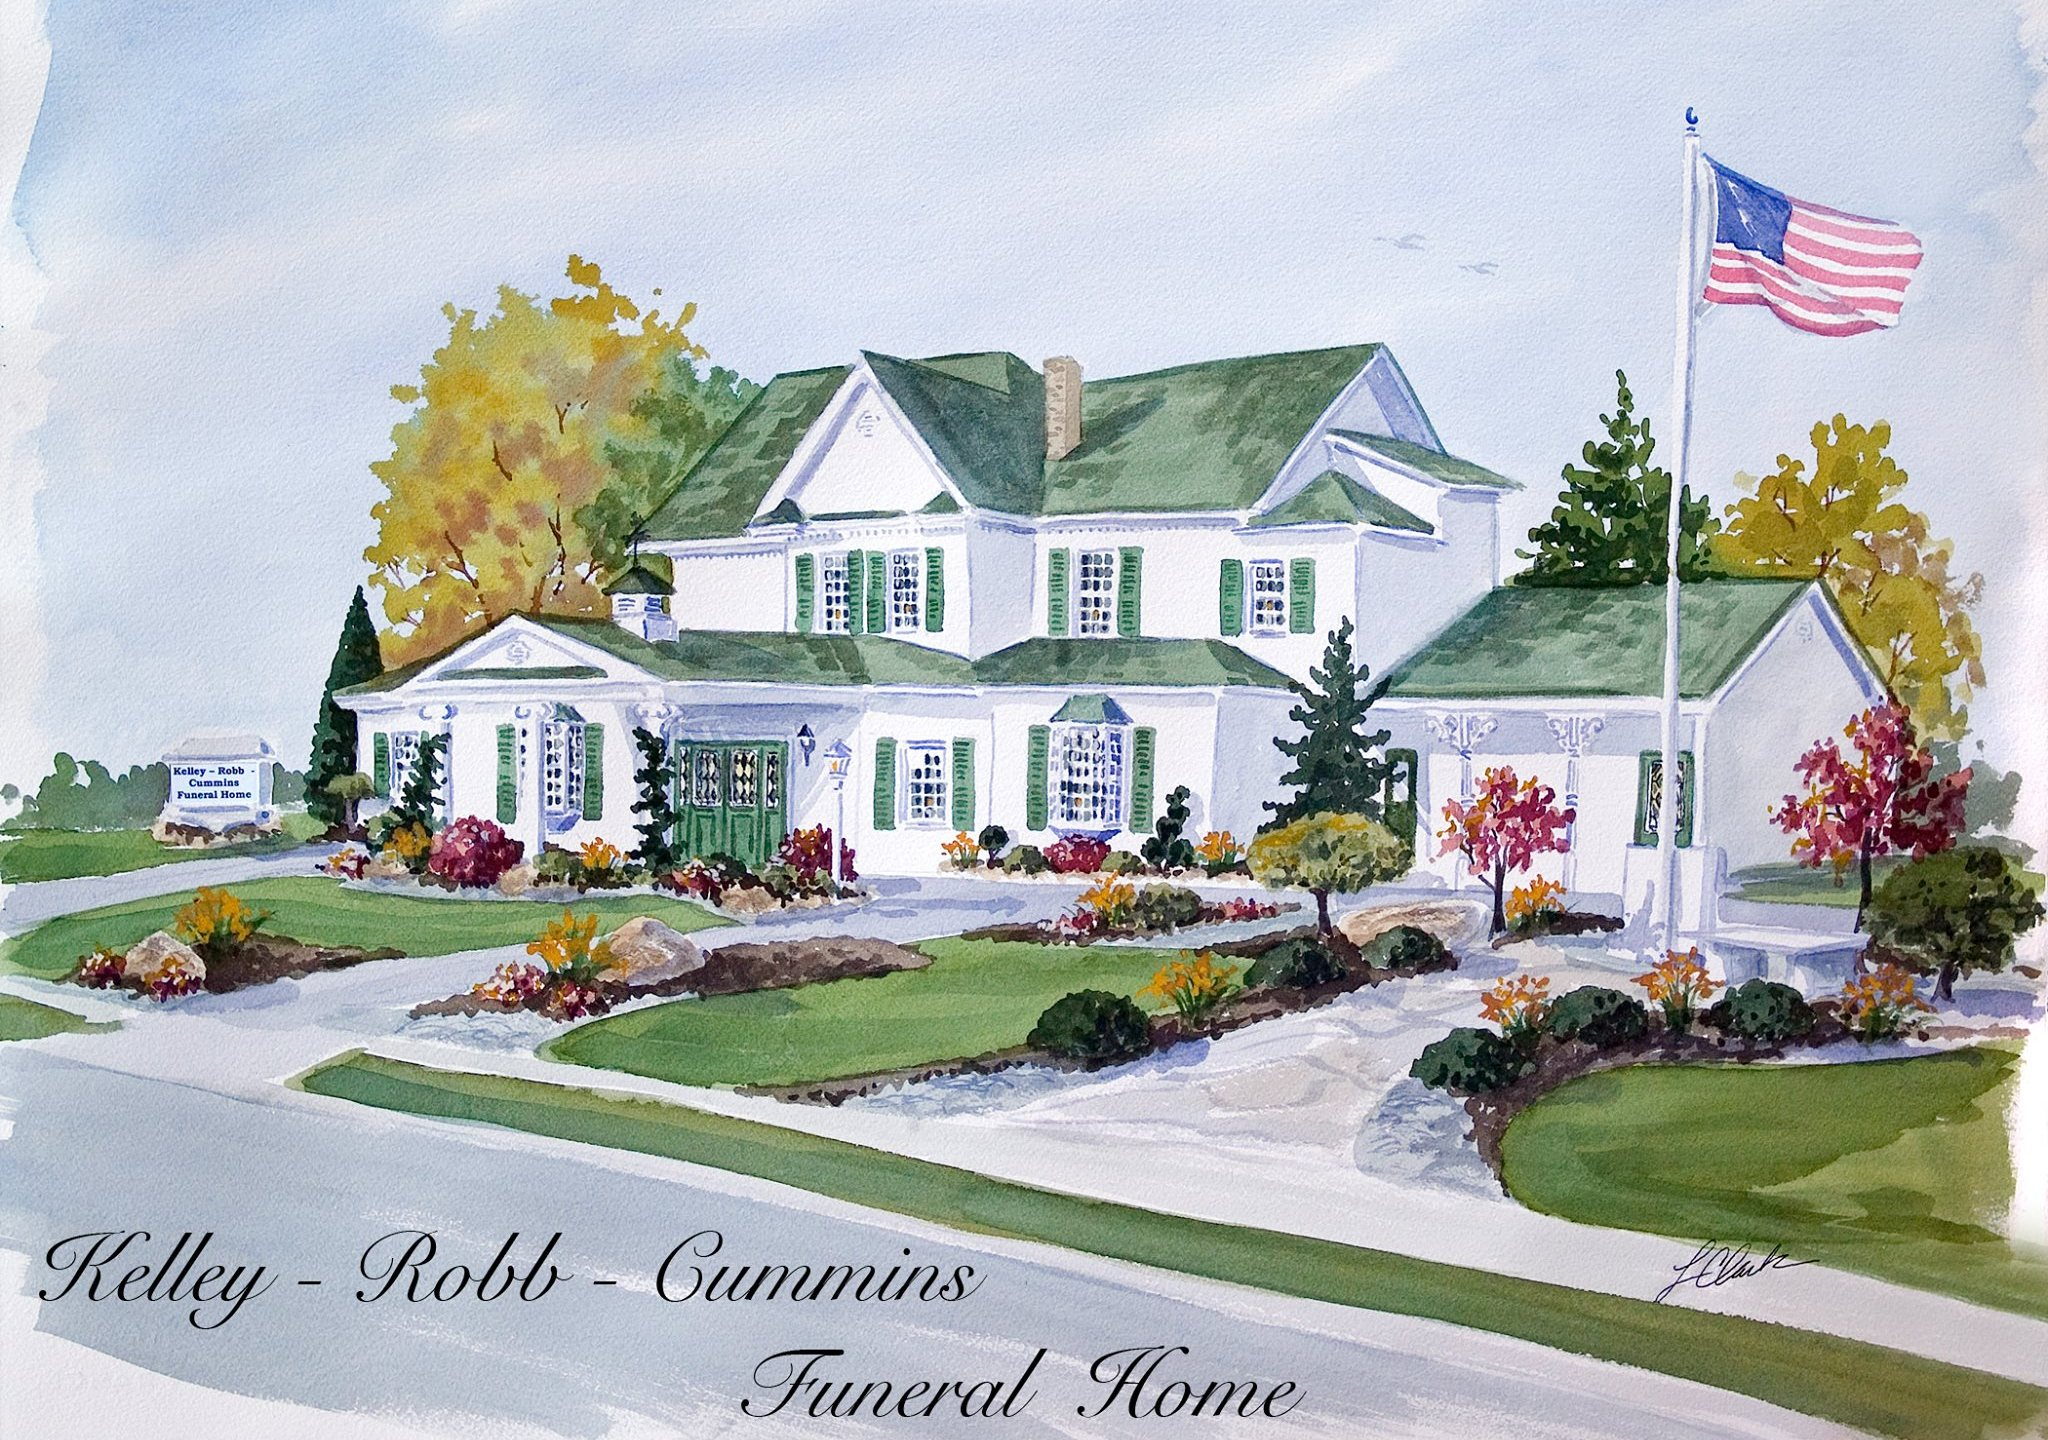 Kelley-Robb-Cummins Funeral Home